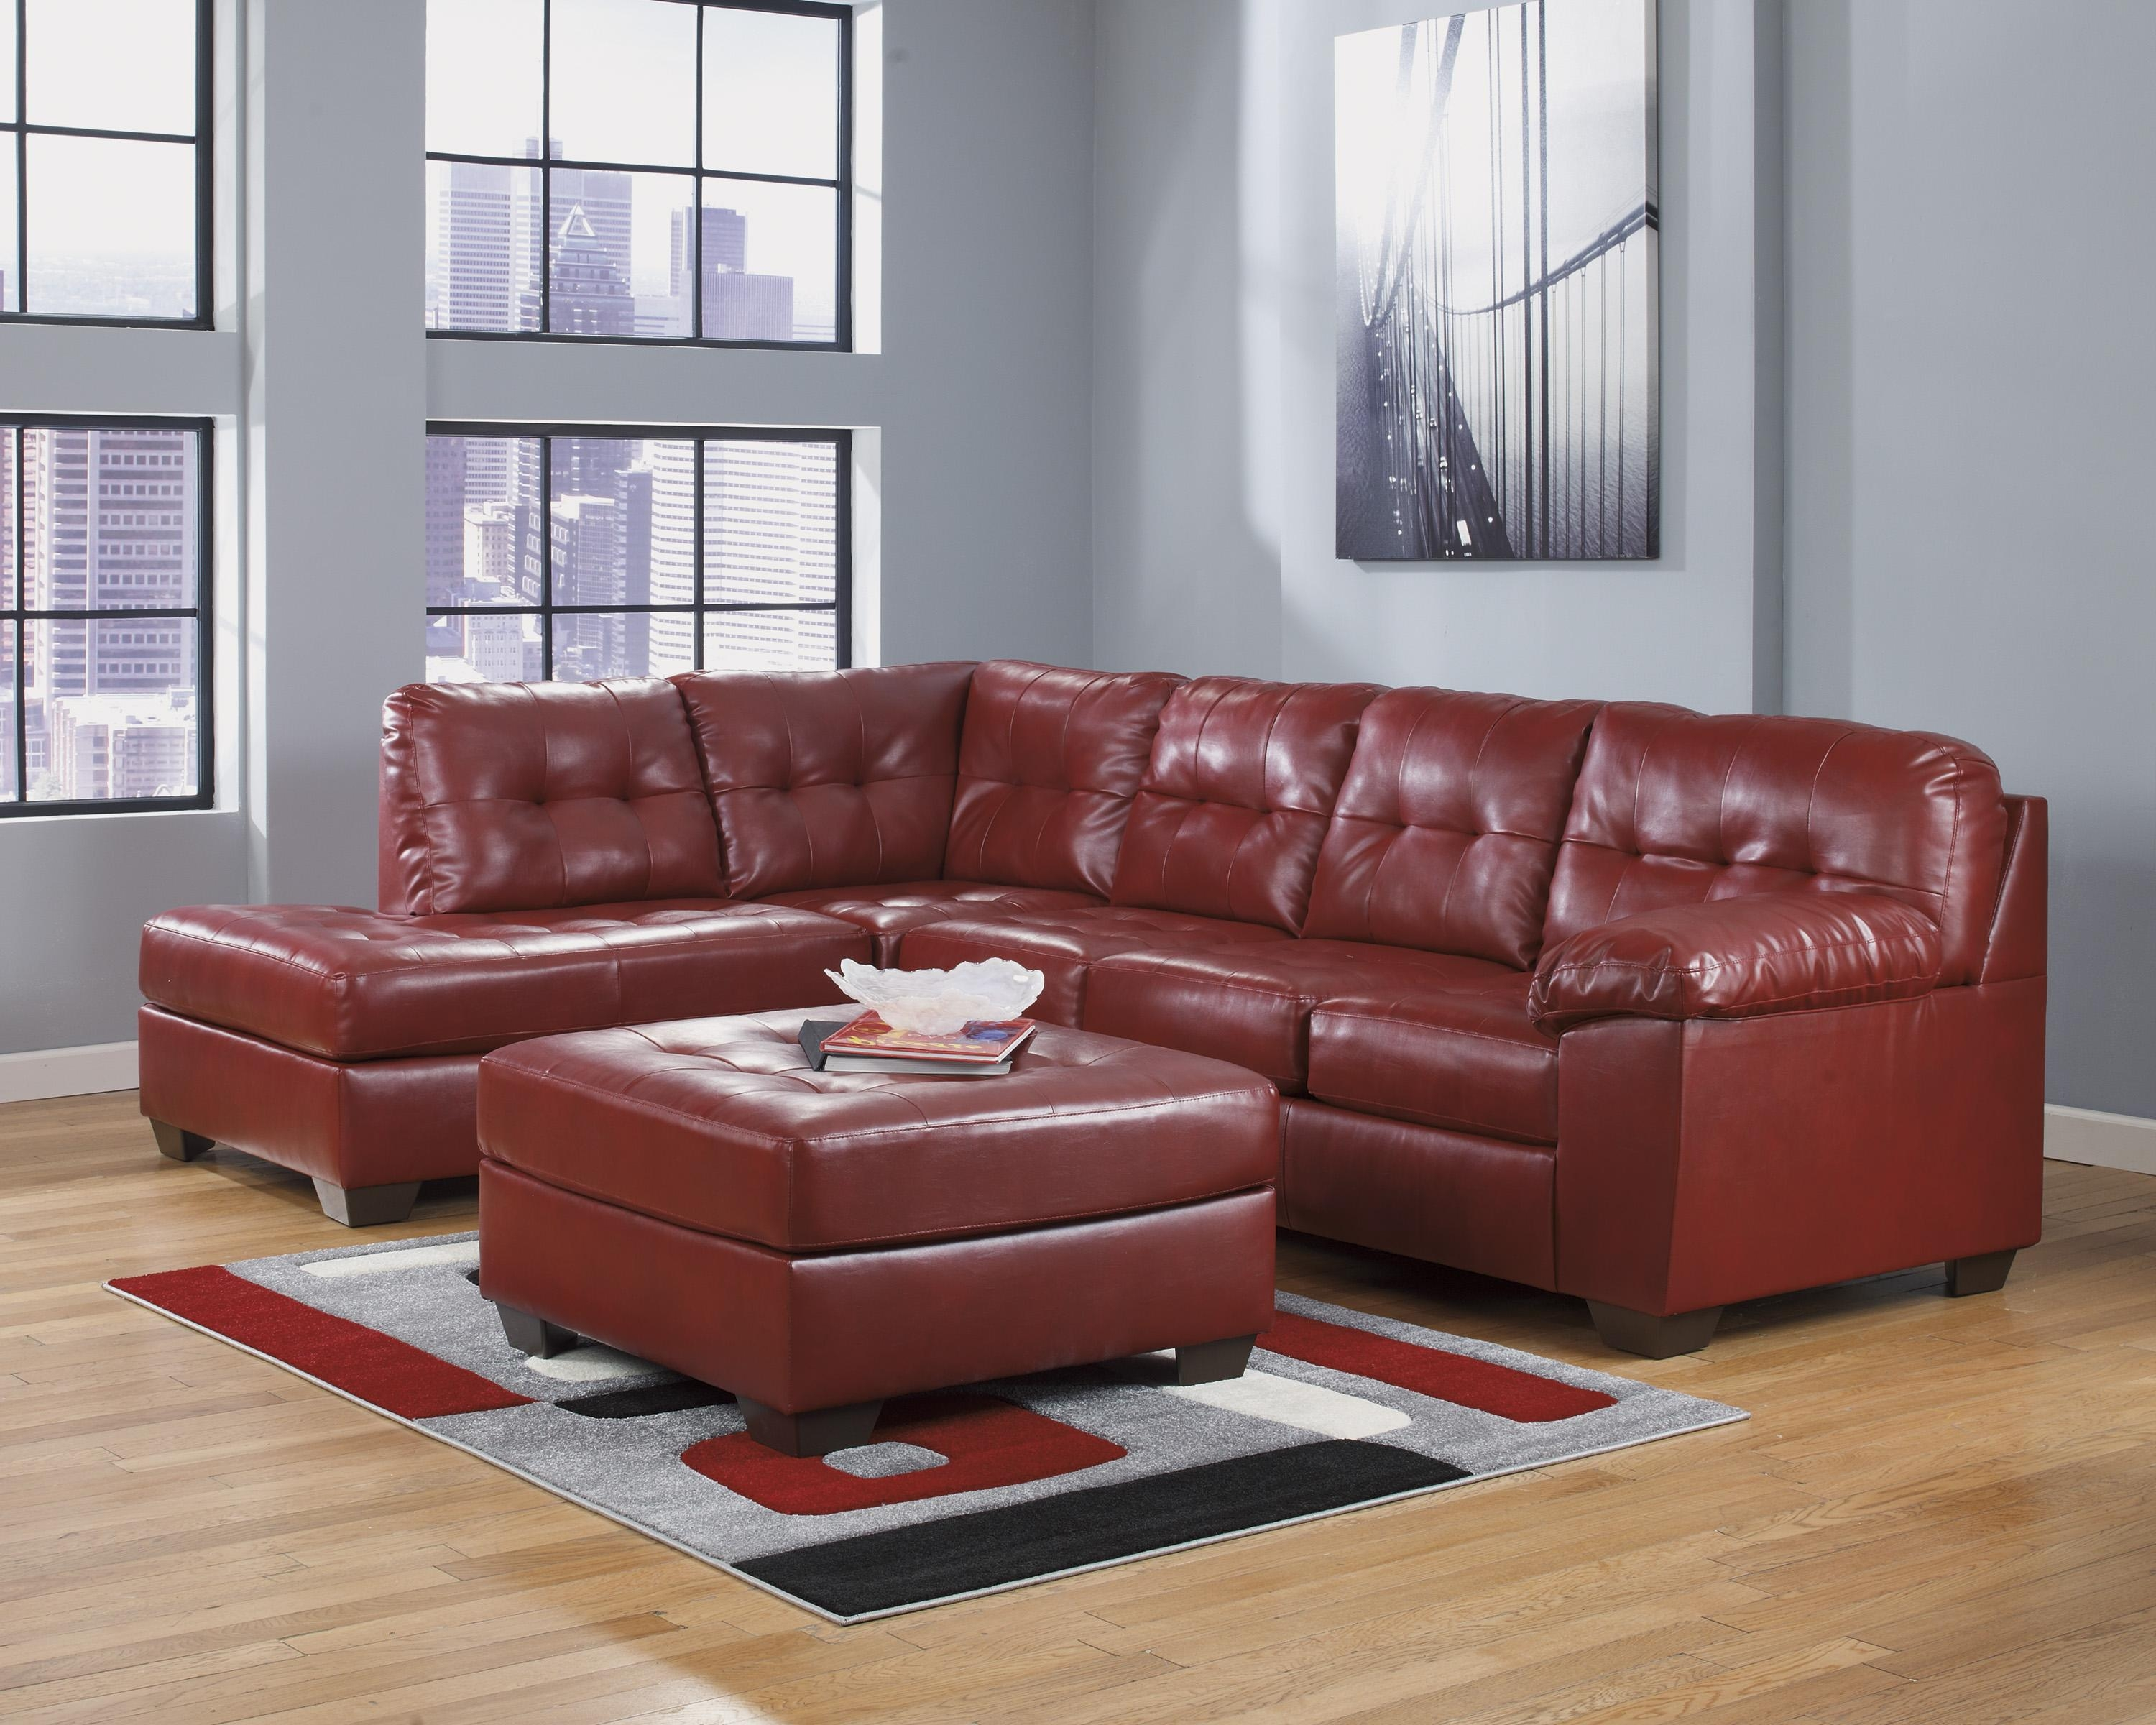 Sofas Center : Sectional Sofas Ashley Furniture Excellent Faux In Ashley Faux Leather Sectional Sofas (View 7 of 20)